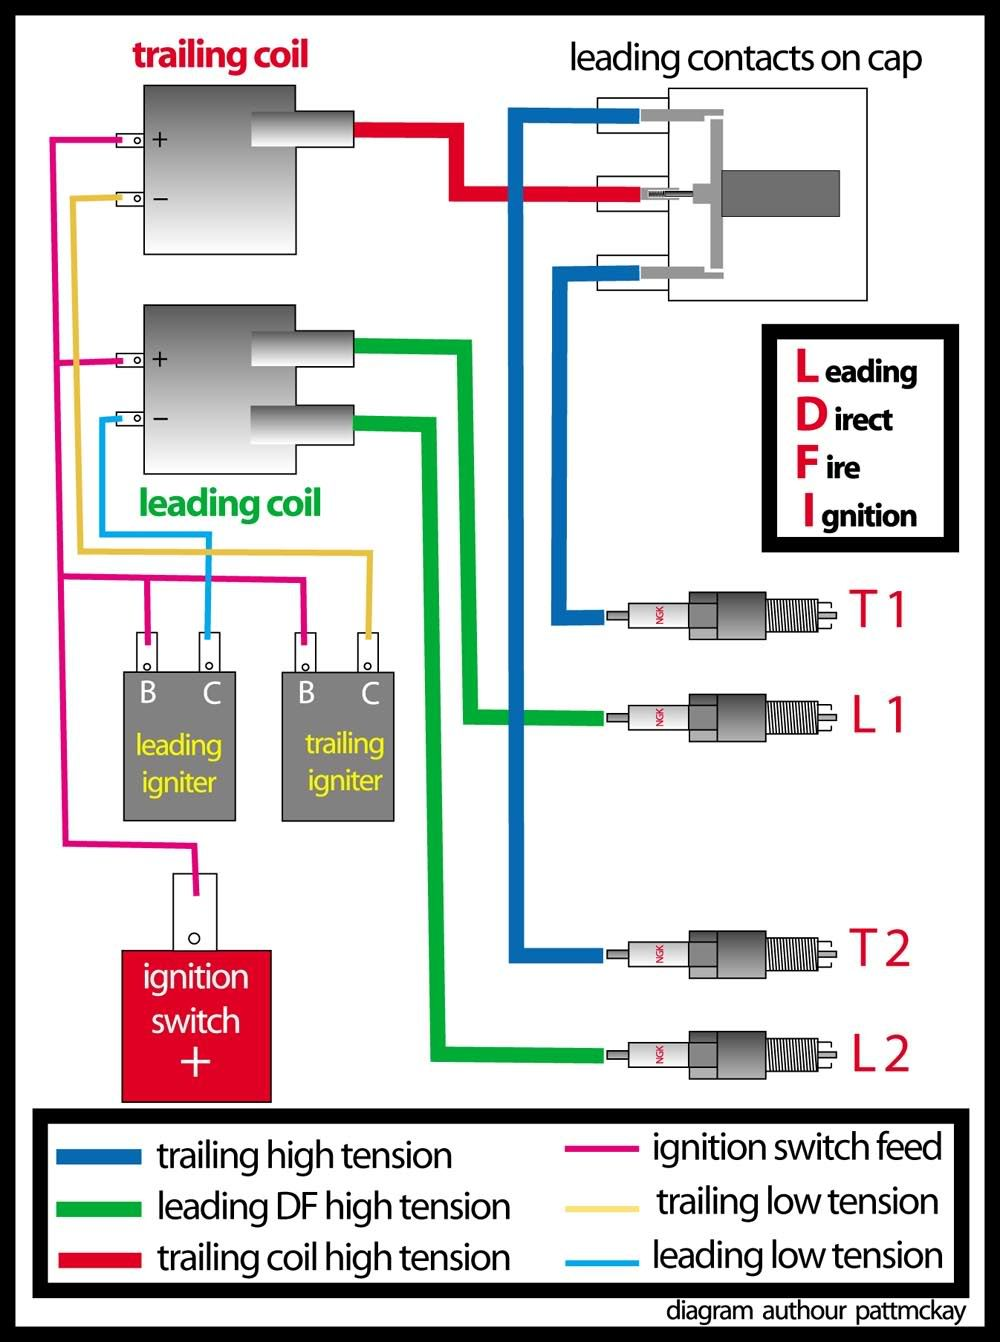 f51a9f8accfbb2accd16cb3edbec5003 here is a simple wiring diagram for a single leading direct fire 1989 mazda rx7 wiring diagram at honlapkeszites.co